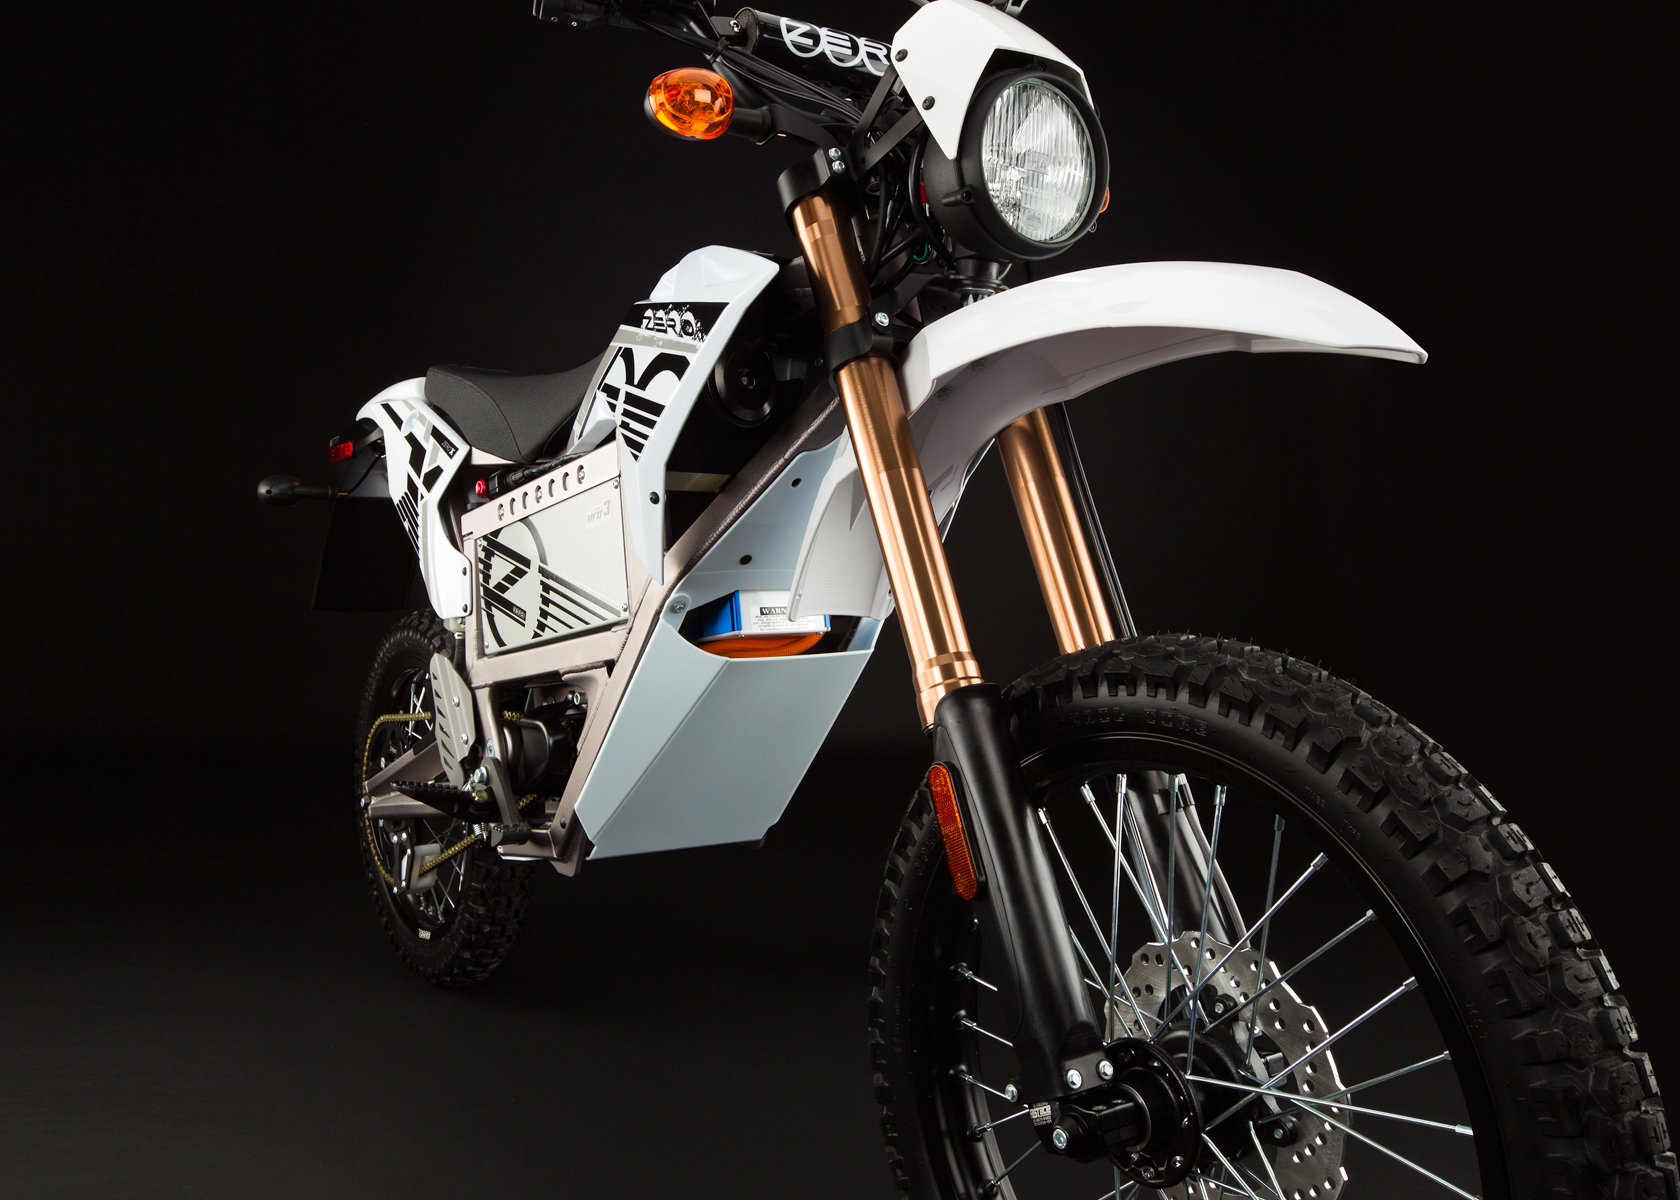 2012 Zero X Electric Motorcycle: Front Fork